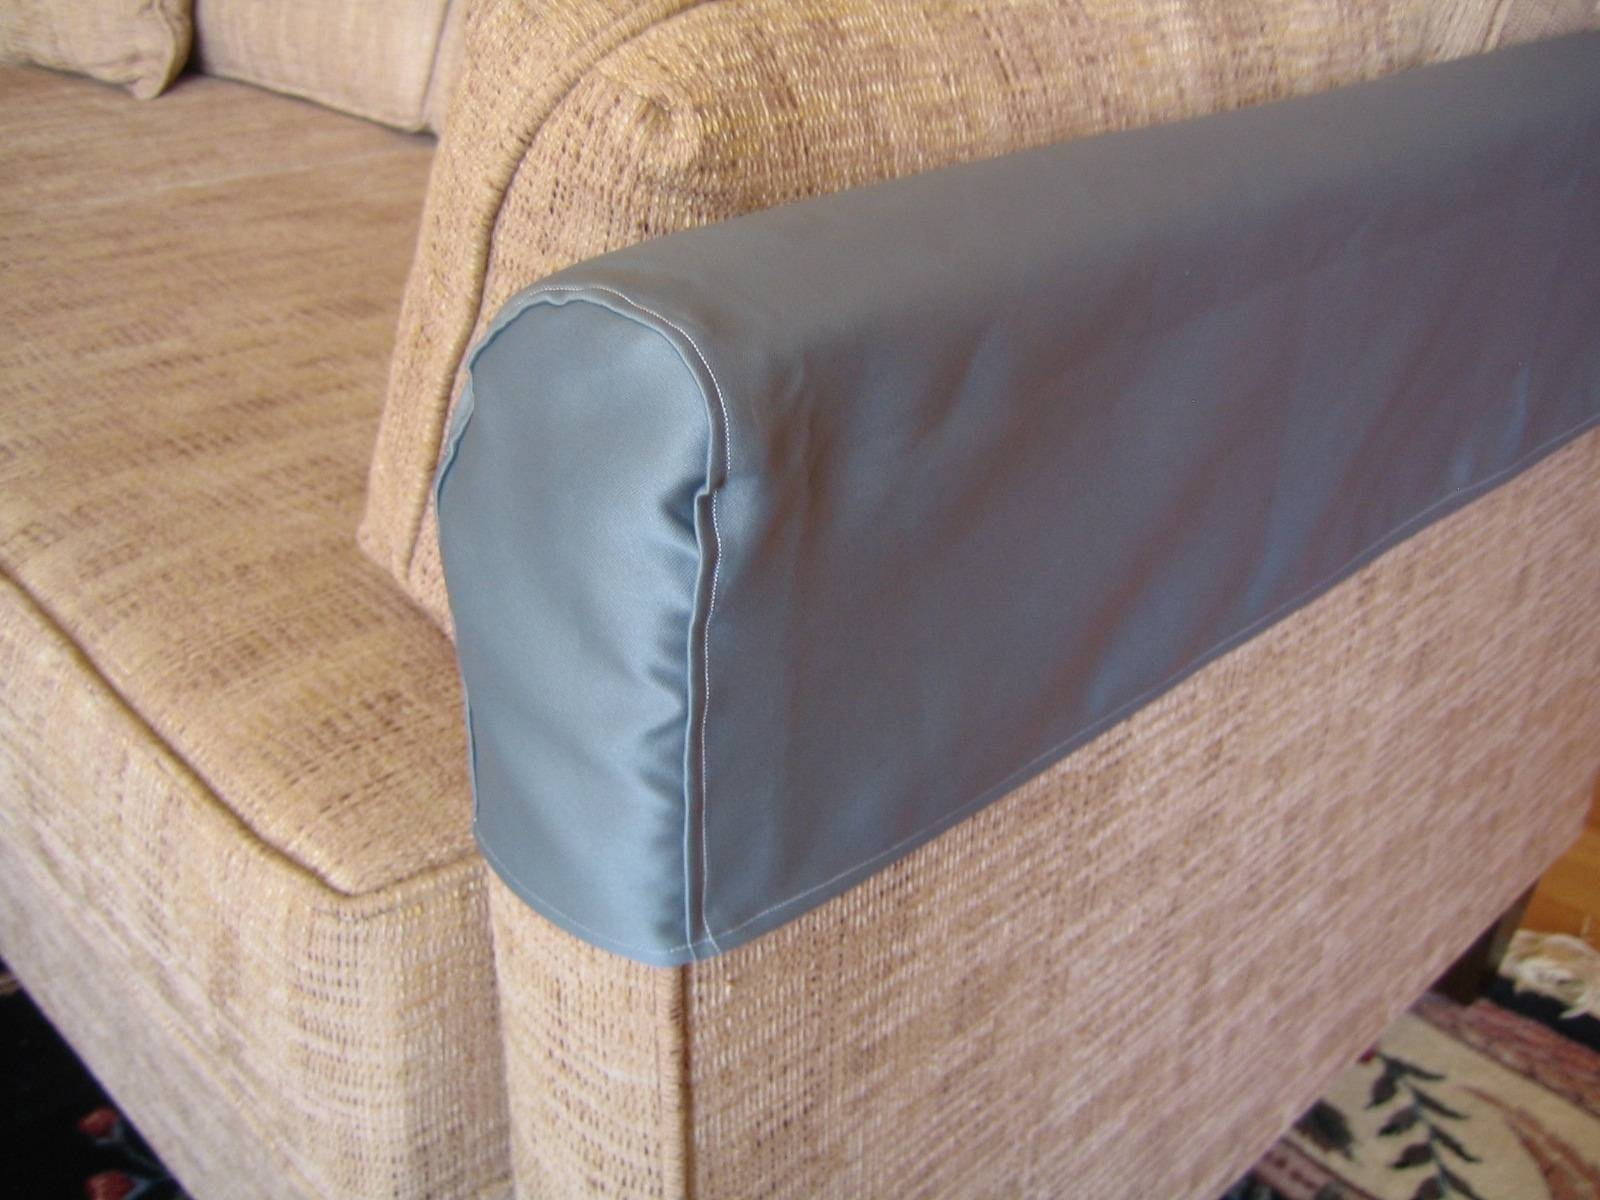 Armrest Covers For Sofas Furniture Linen Couch Slipcovers For Sofa throughout Arm Protectors for Sofas (Image 3 of 15)